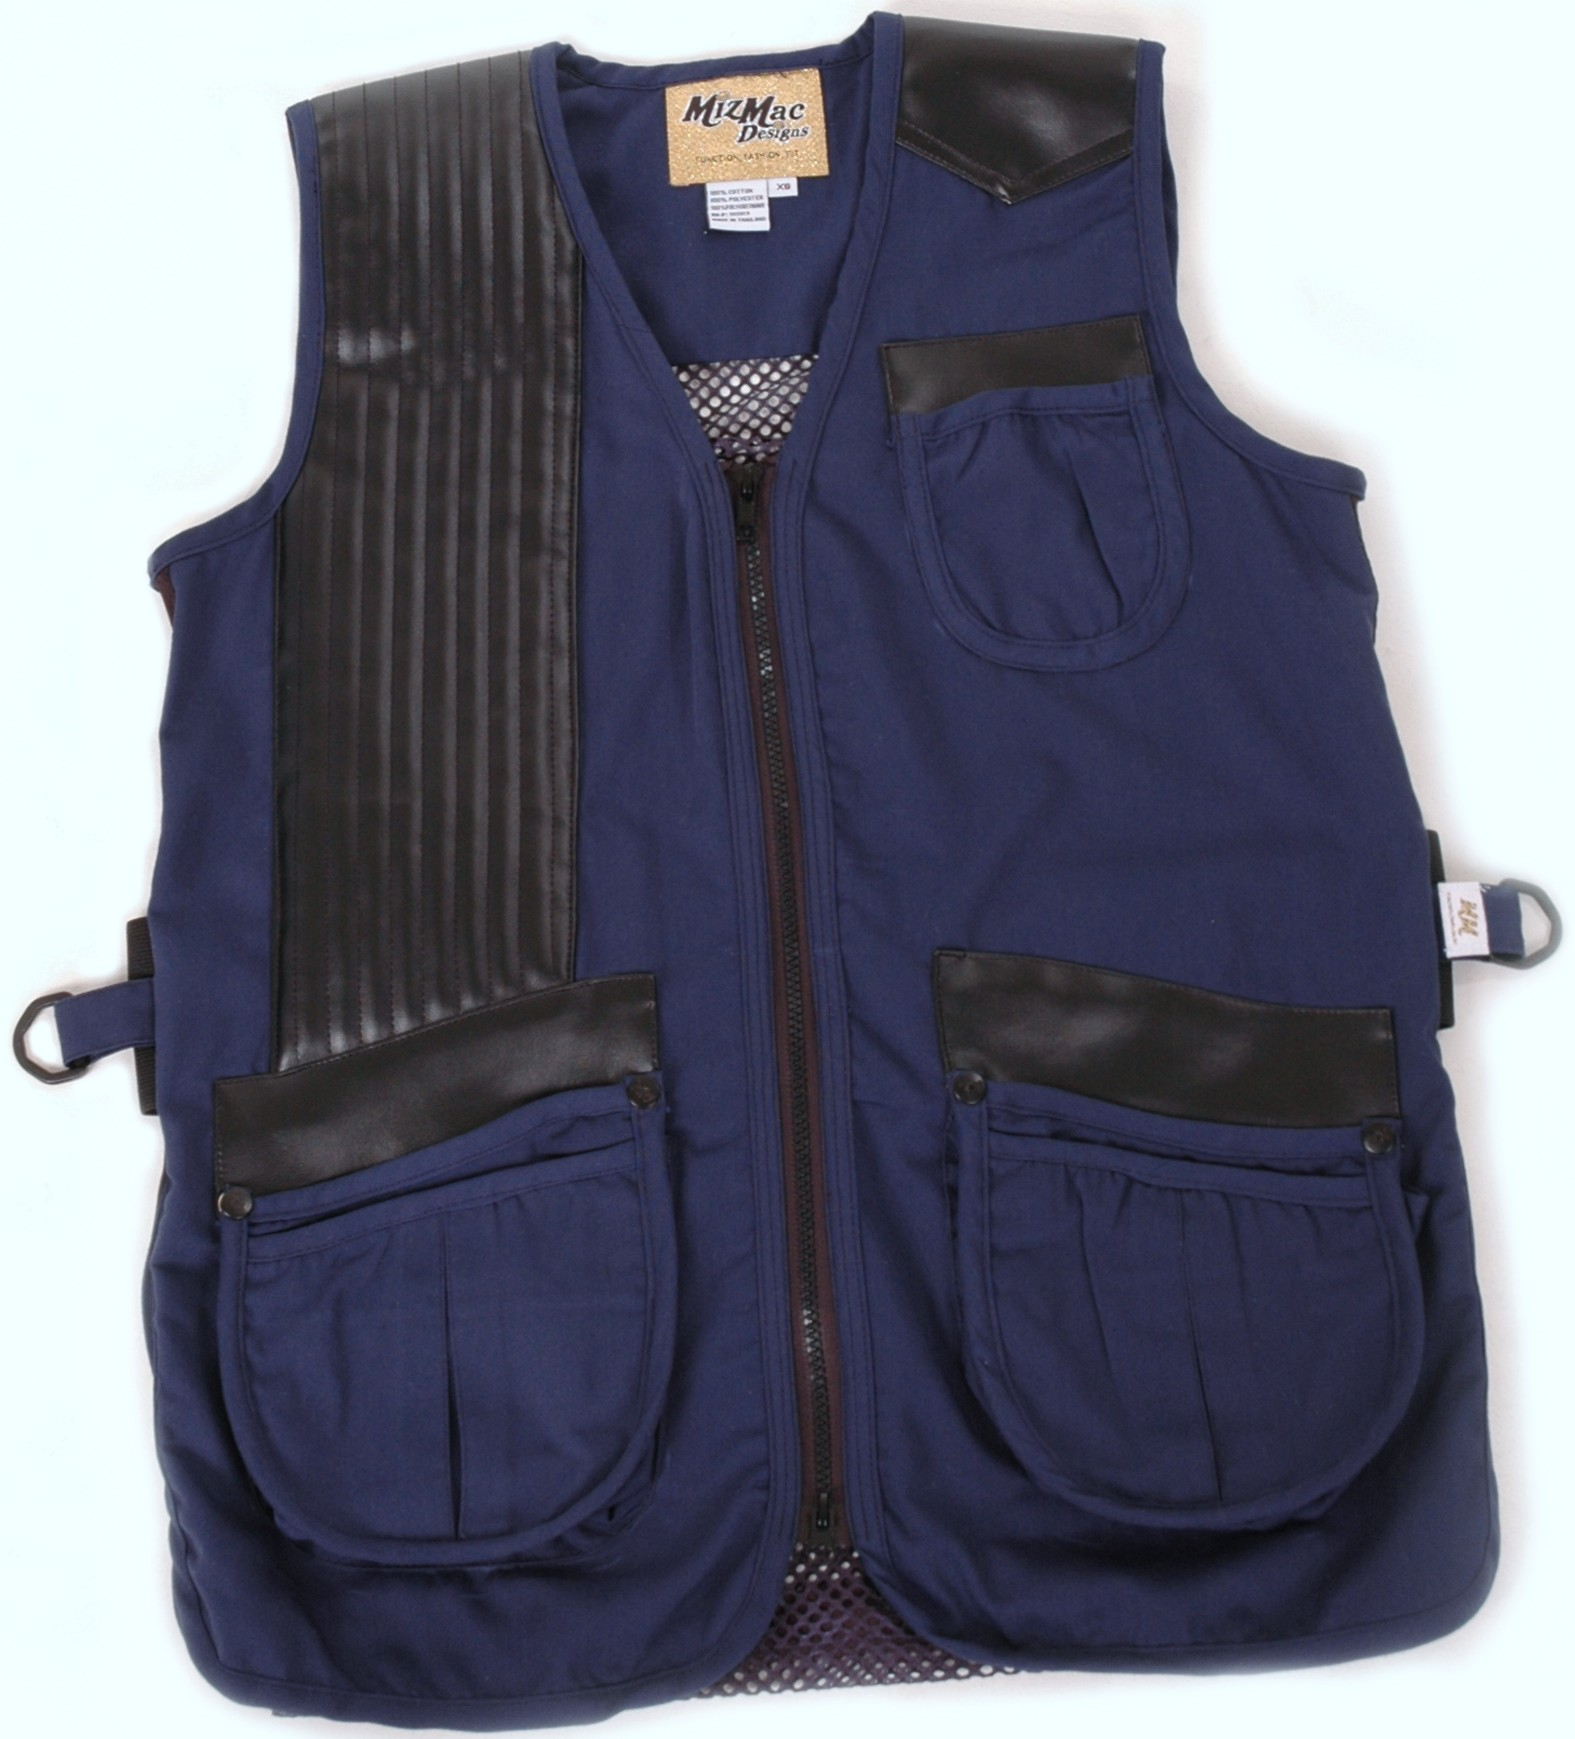 MizMac Womens Twill & Mesh Vest -- Navy (CLOSE OUT) womens shooting vest, mesh vest, leather shooting vest, leatherette vest, adjustable vest